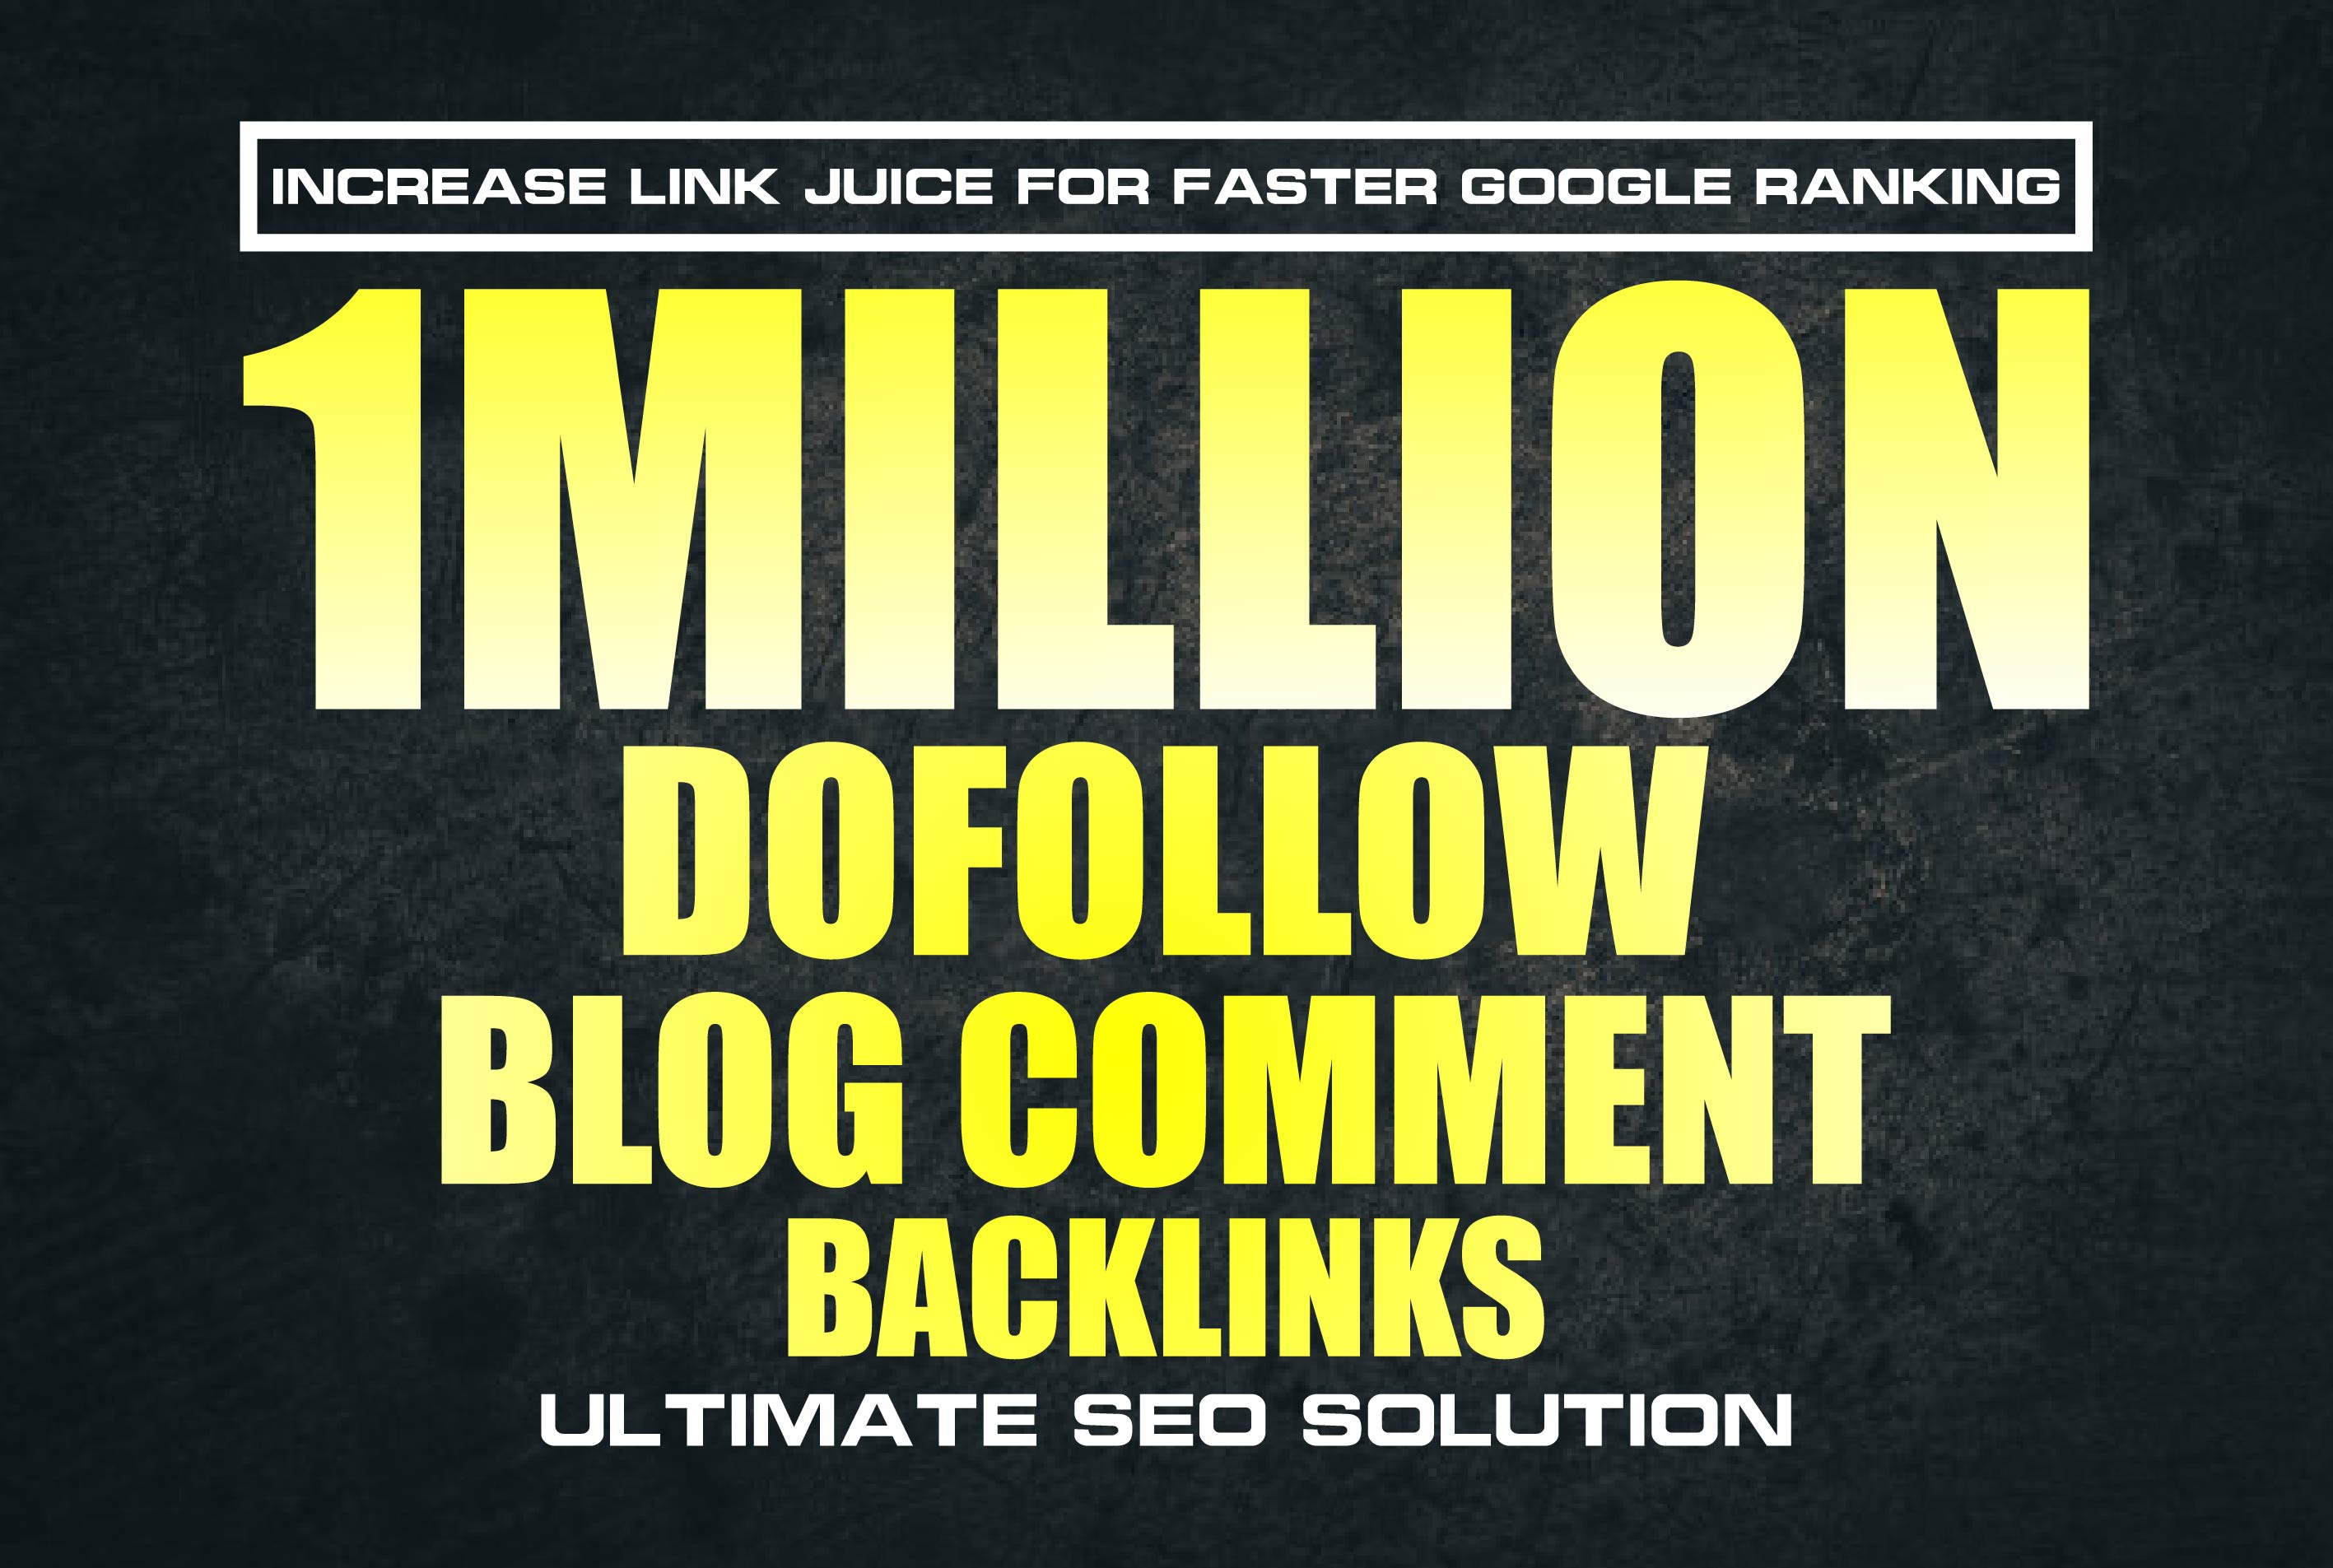 I will build 1million Dofollow Blog Comment Backlinks